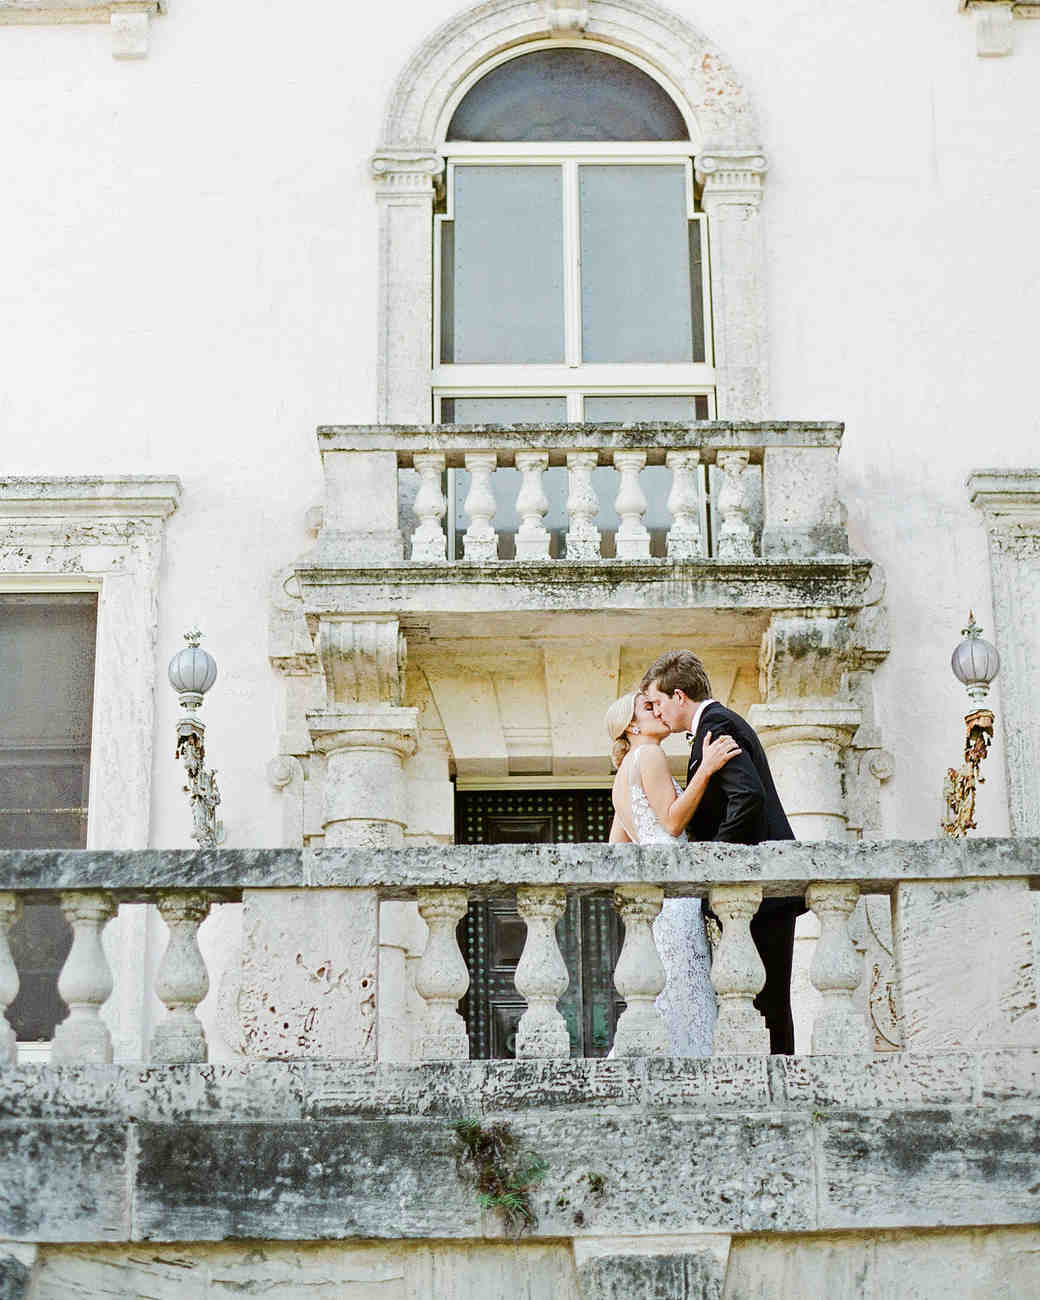 natalie jamey wedding couple balcony kiss